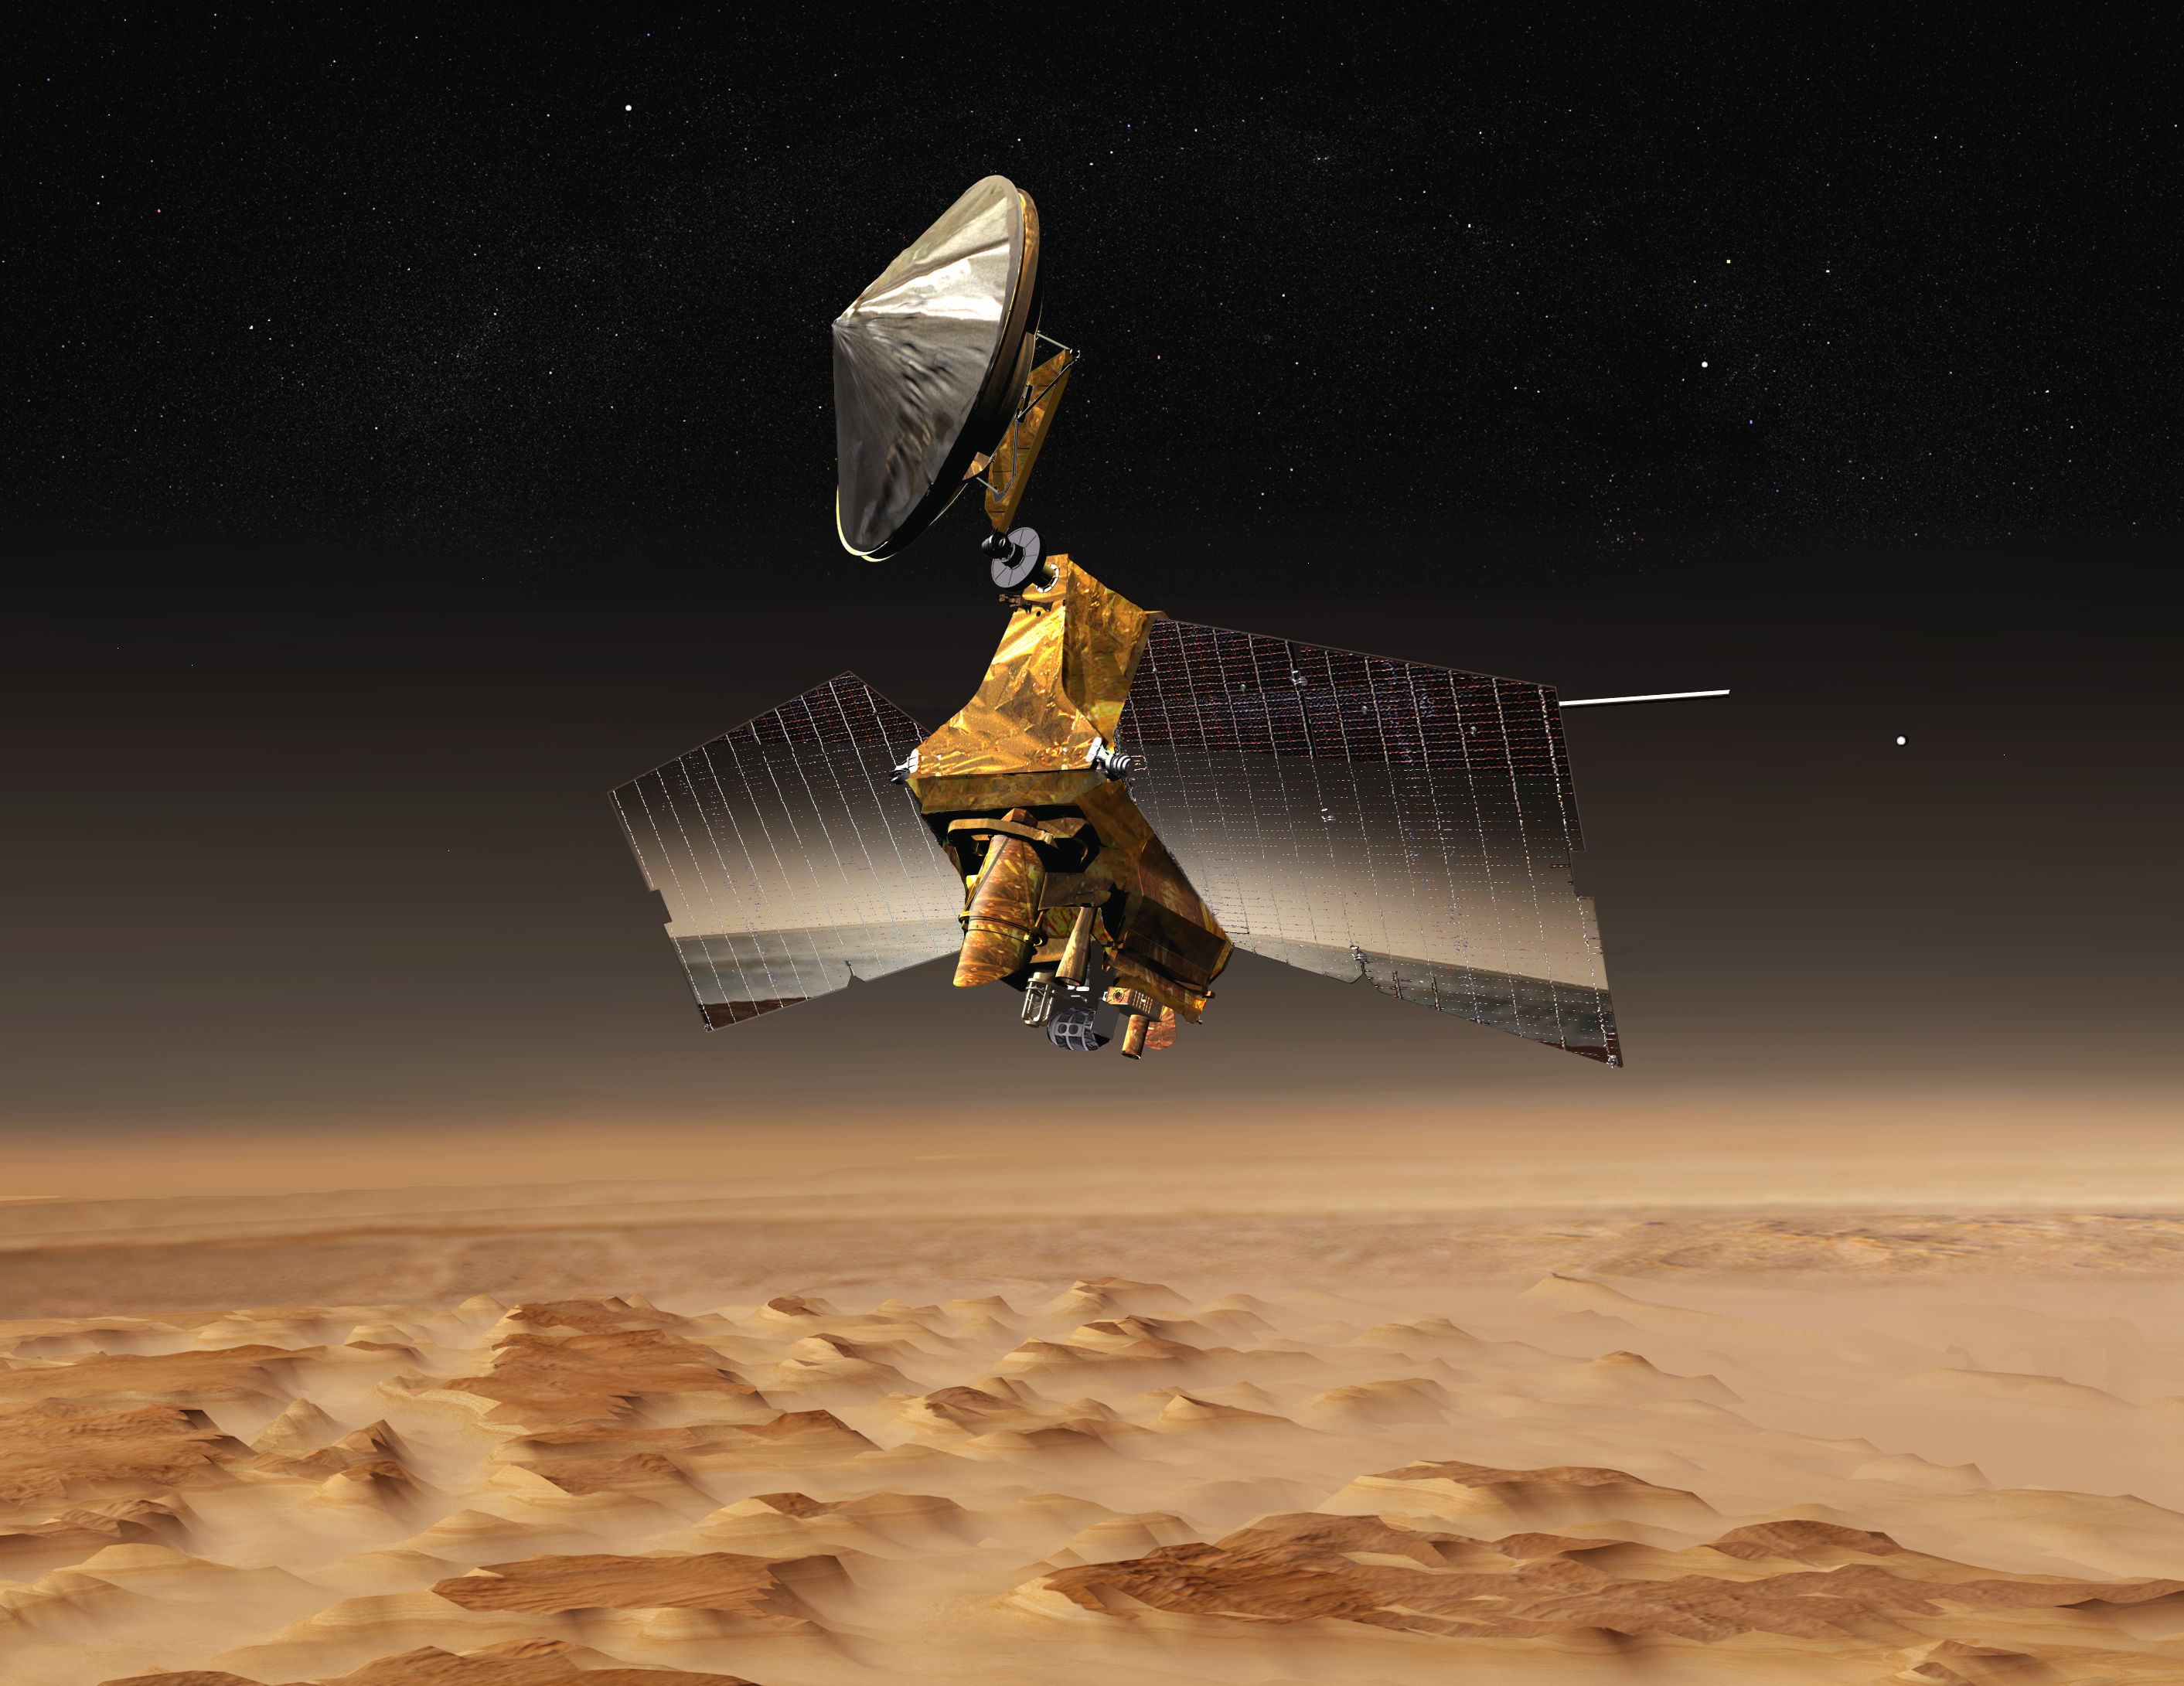 NASA prepares to send the first interplanetary cubsats to Mars 16